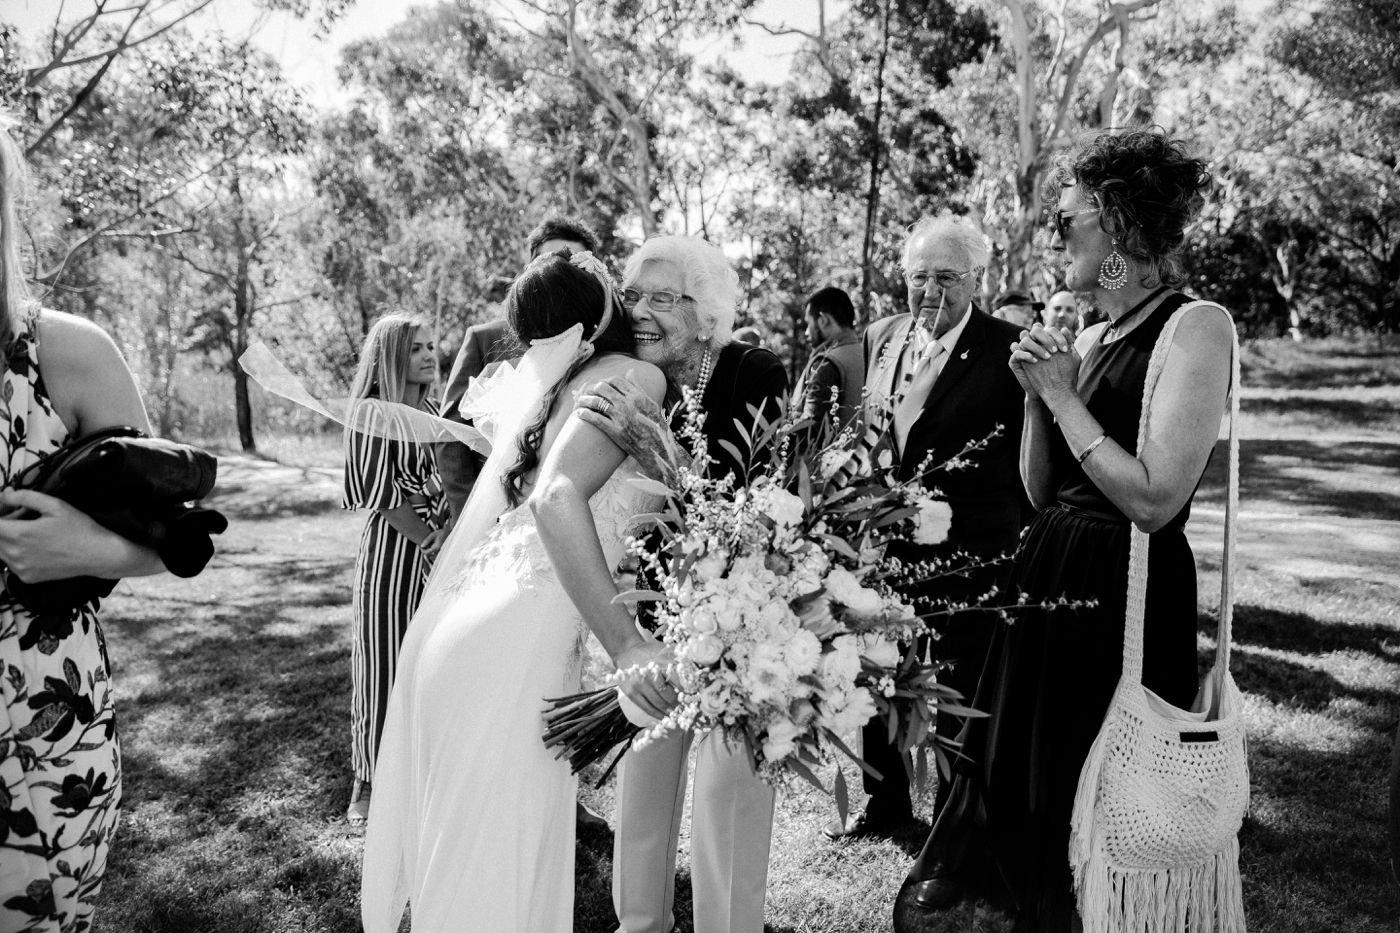 Maddy & Wes - K1 by Geoff Hardy Wedding - Adelaide Wedding Photographer - Natural wedding photography in Adelaide - Katherine Schultz_0037.jpg